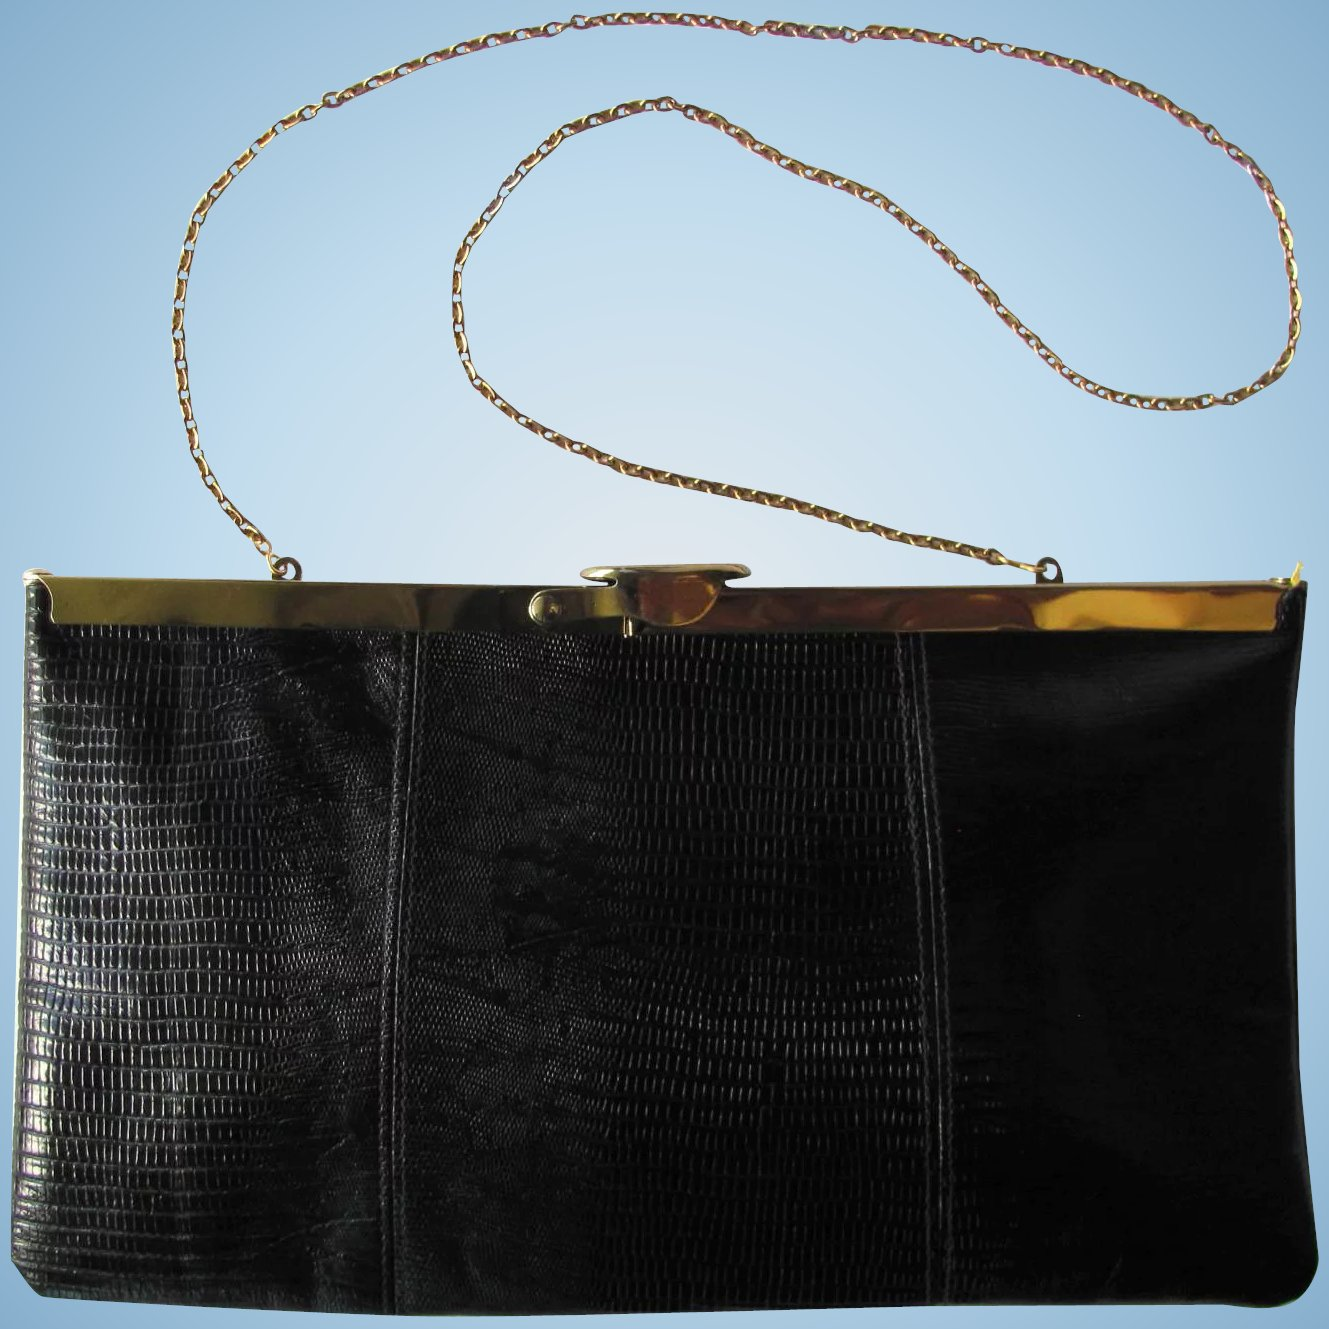 4d604815d13b Vintage 1950 s Black Leather Convertible Clutch with Hinged Frame by Etra.  Click to expand